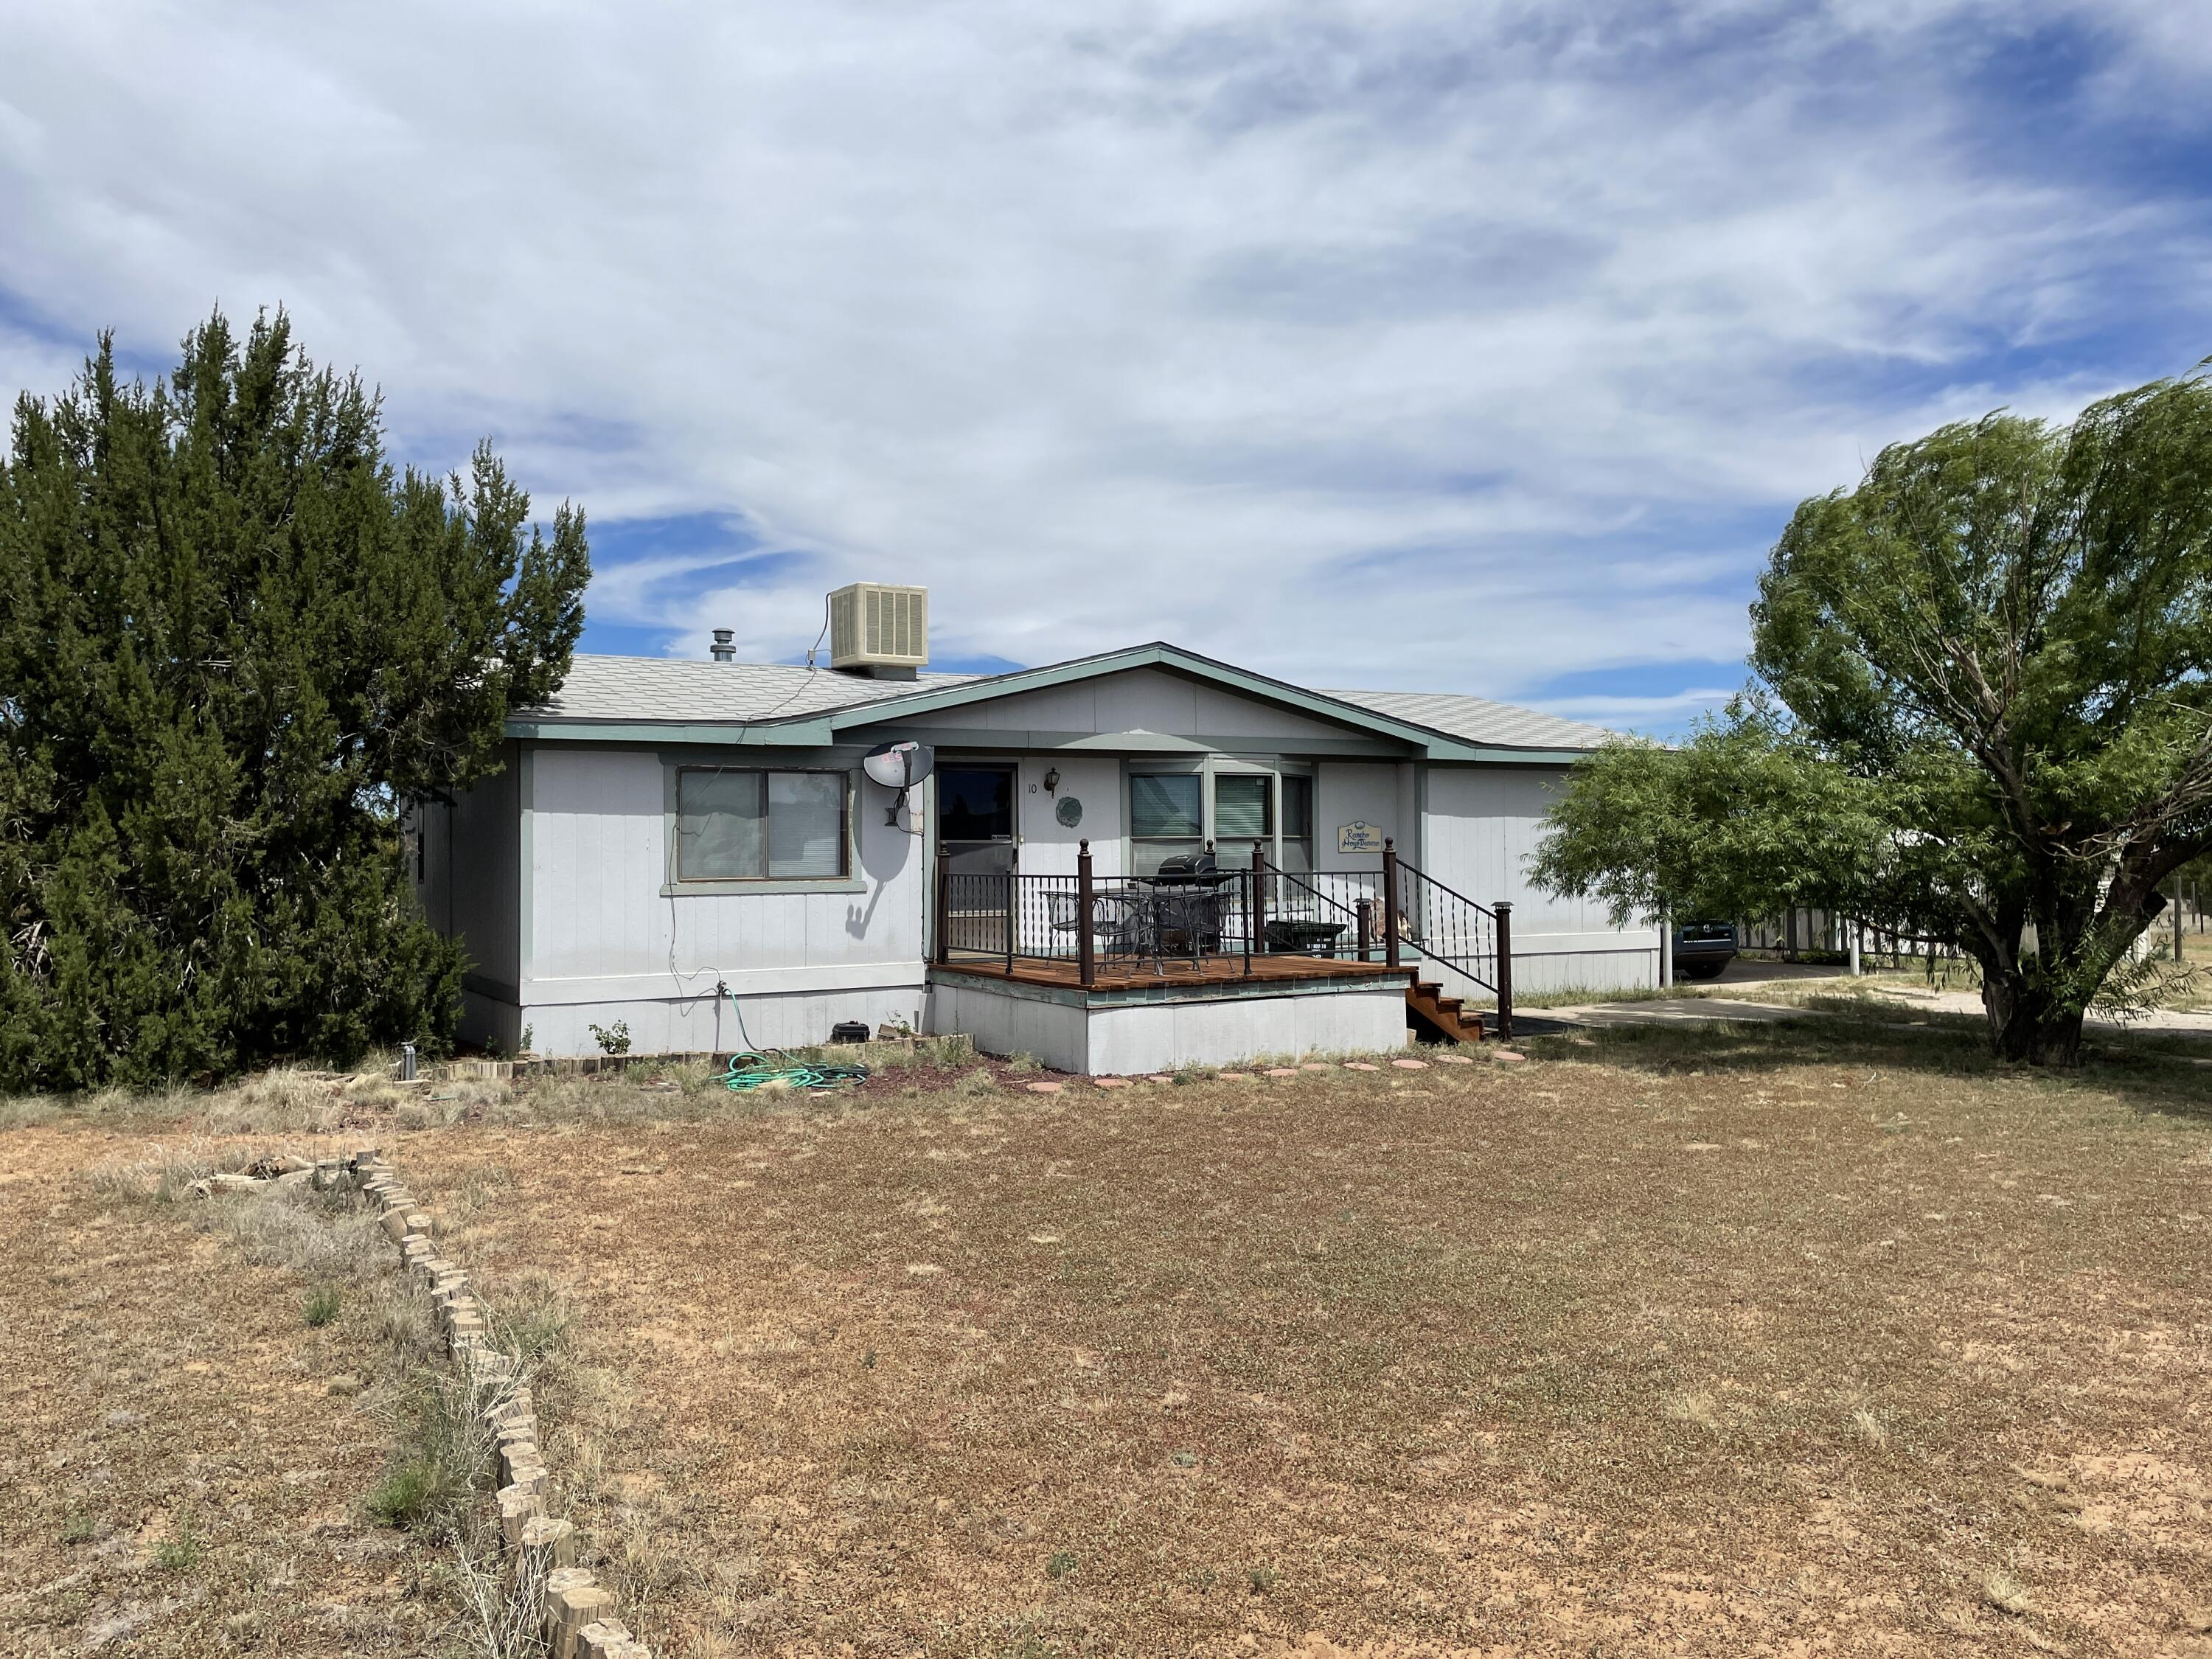 For sale nice well kept manufactured home located in Edgewood NM. Close to amenities and Moriarty Edgewood Schools. About a 35 minute drive to Albuquerque and just over an hour to Santa Fe New Mexico. This home has easy access to NM 344 and the I-40 corridor. Would be great for a single family starter home. Community water is supplied by Epcor. Includes a 24x24 covered carport and an 11x11 foot front deck. The poly piping was replaced around 1997. Owner is working on getting it on a permanent foundation. Come live the small town lifestyle.